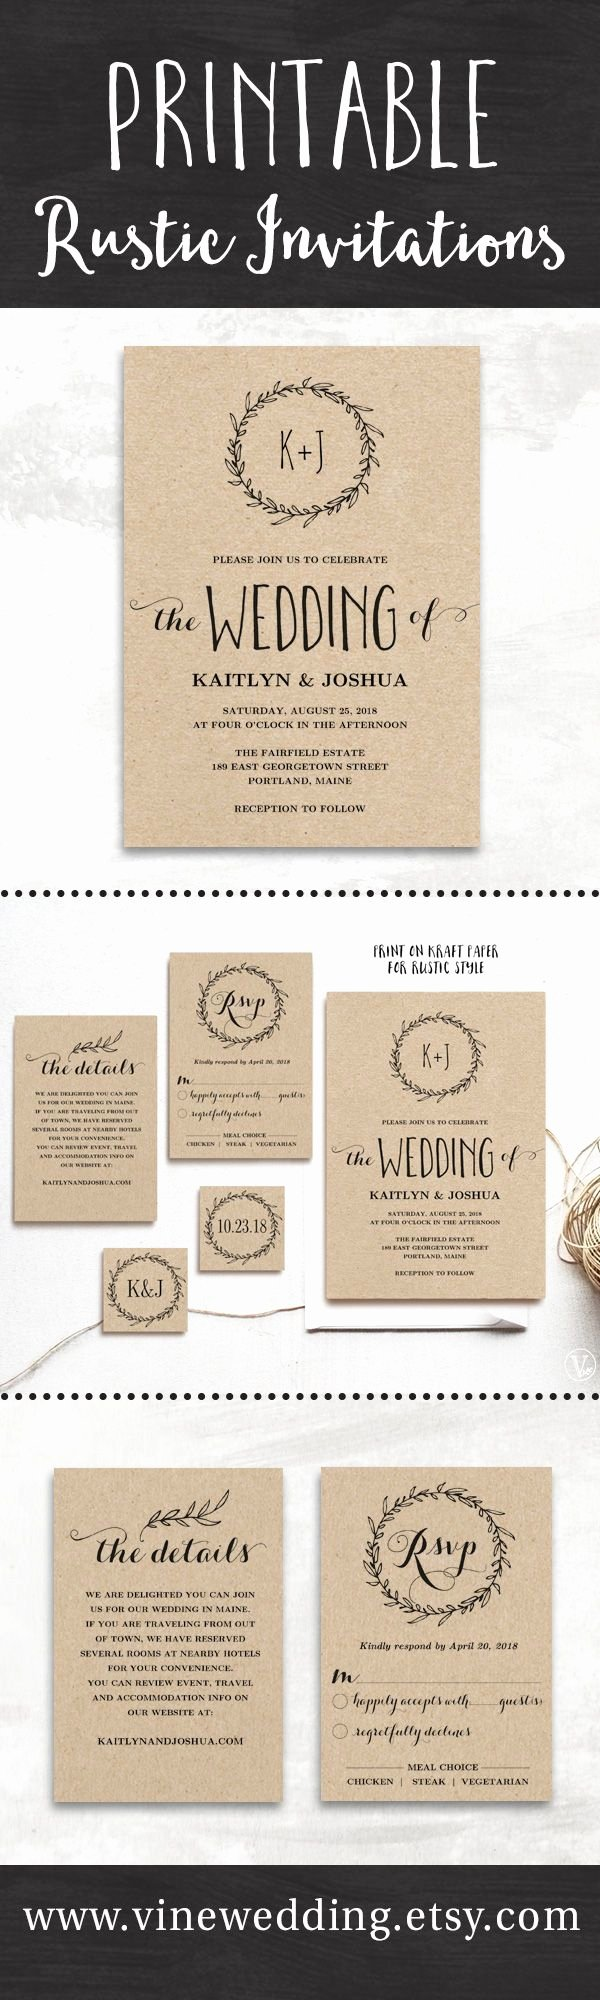 Rustic Wedding Invitations Templates Inspirational 25 Best Ideas About Rustic Wedding Invitations On Pinterest